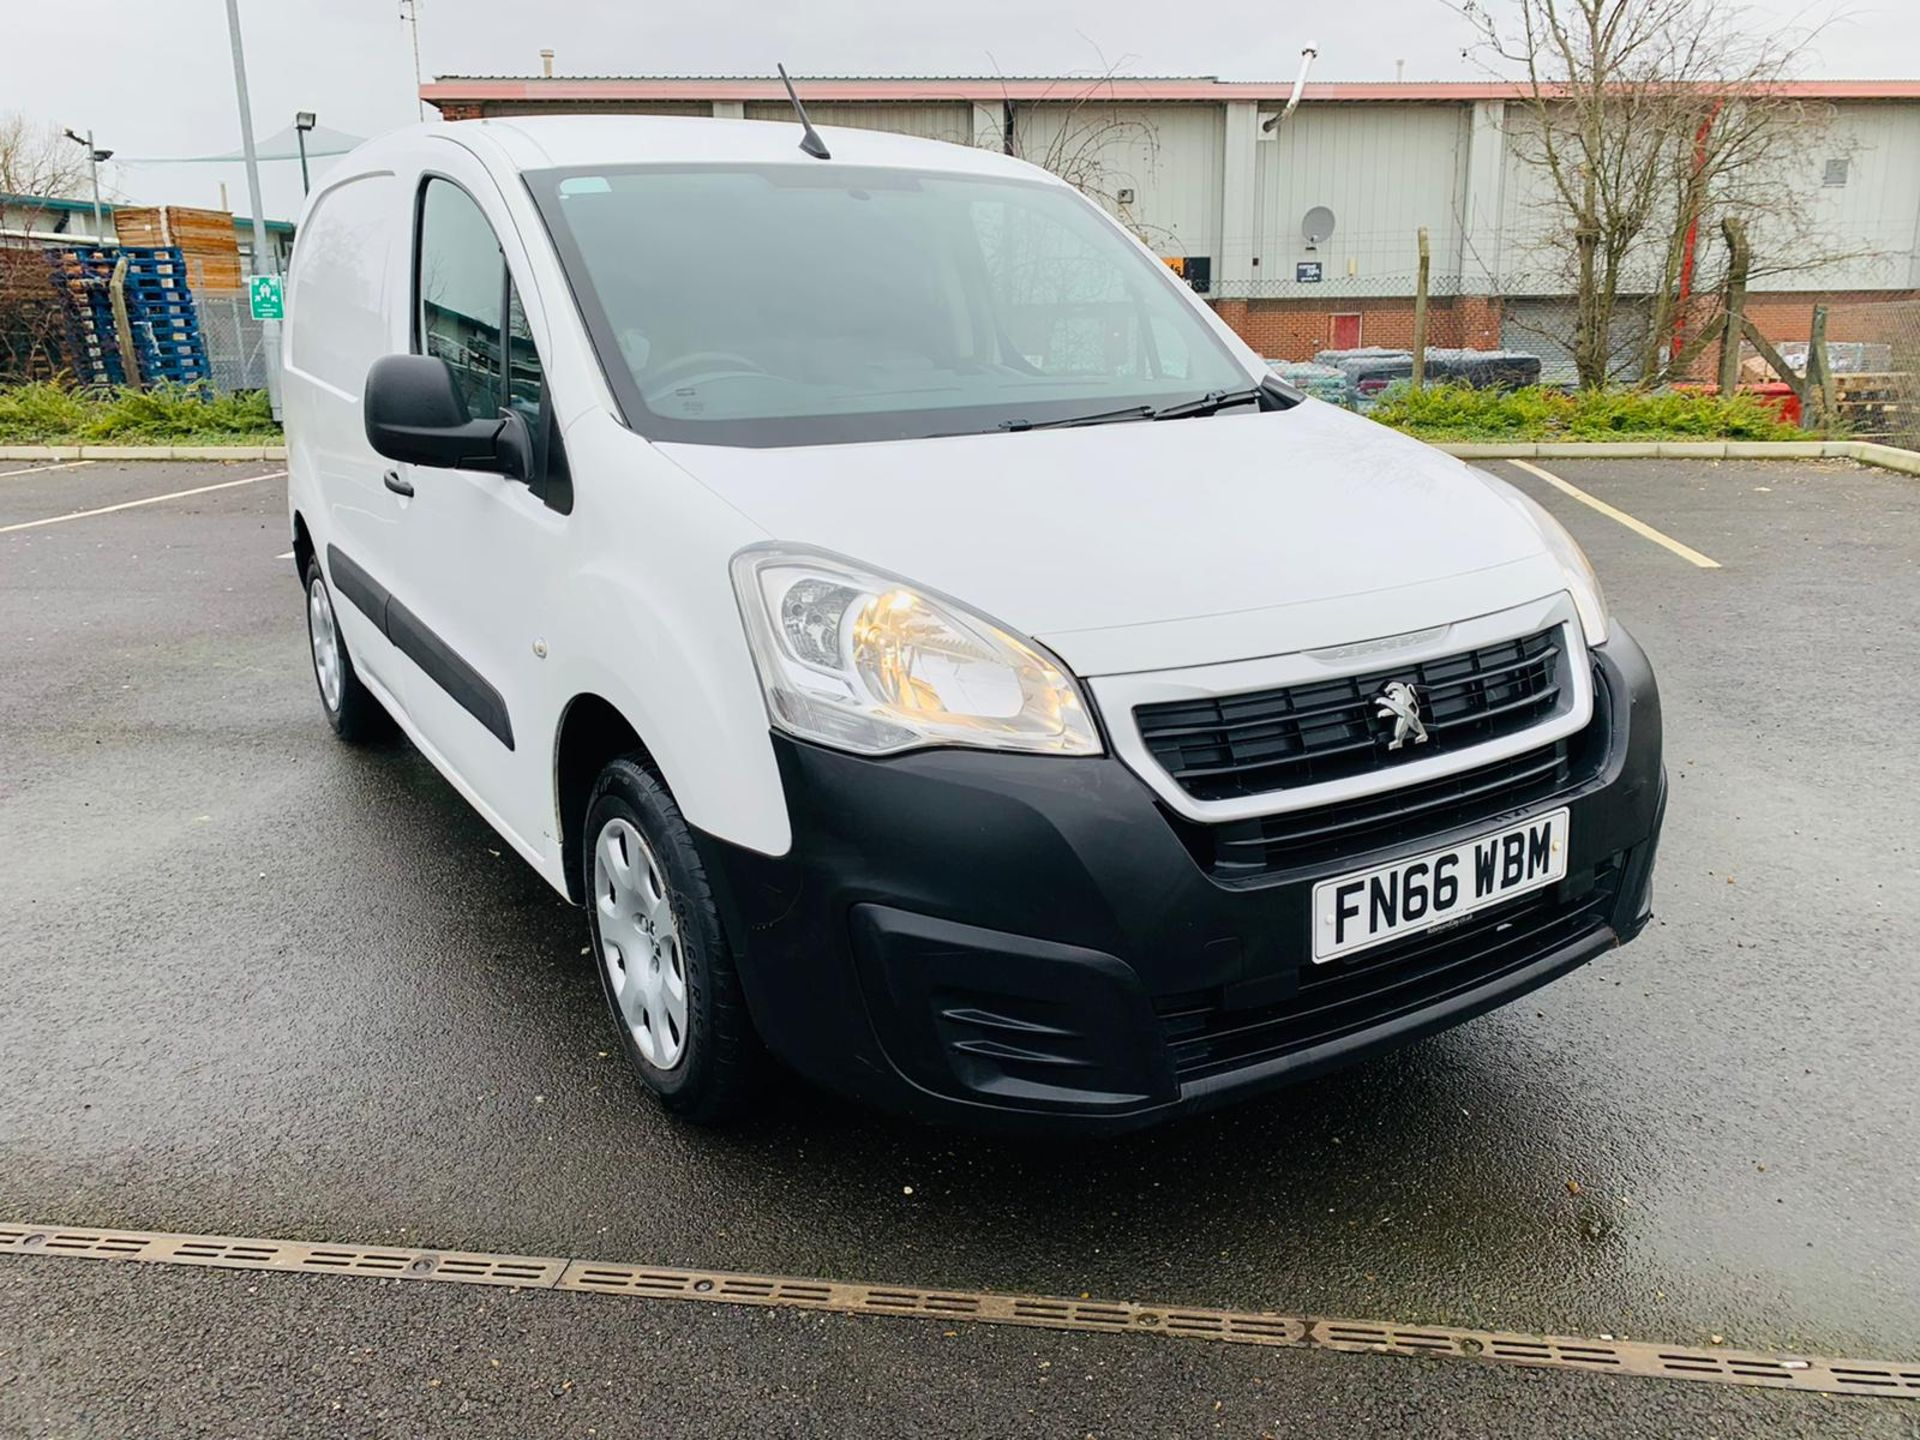 (RESERVE MET) Peugeot Partner 1.6 HDI Professional - 2017 Model - Air Con - Service History - Image 5 of 22